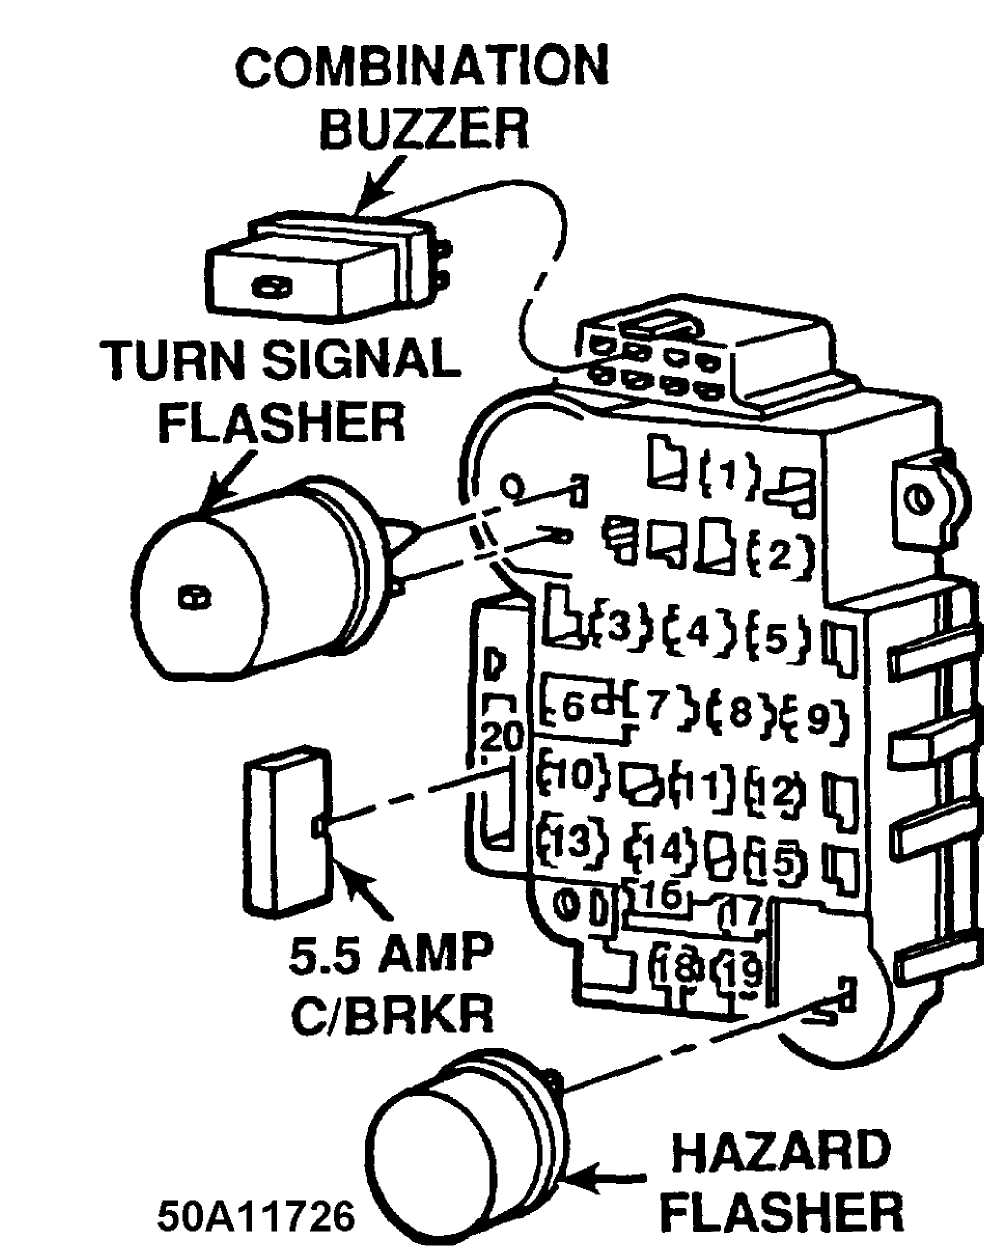 93 Jeep Cherokee Fuse Box Diagram : 33 Wiring Diagram